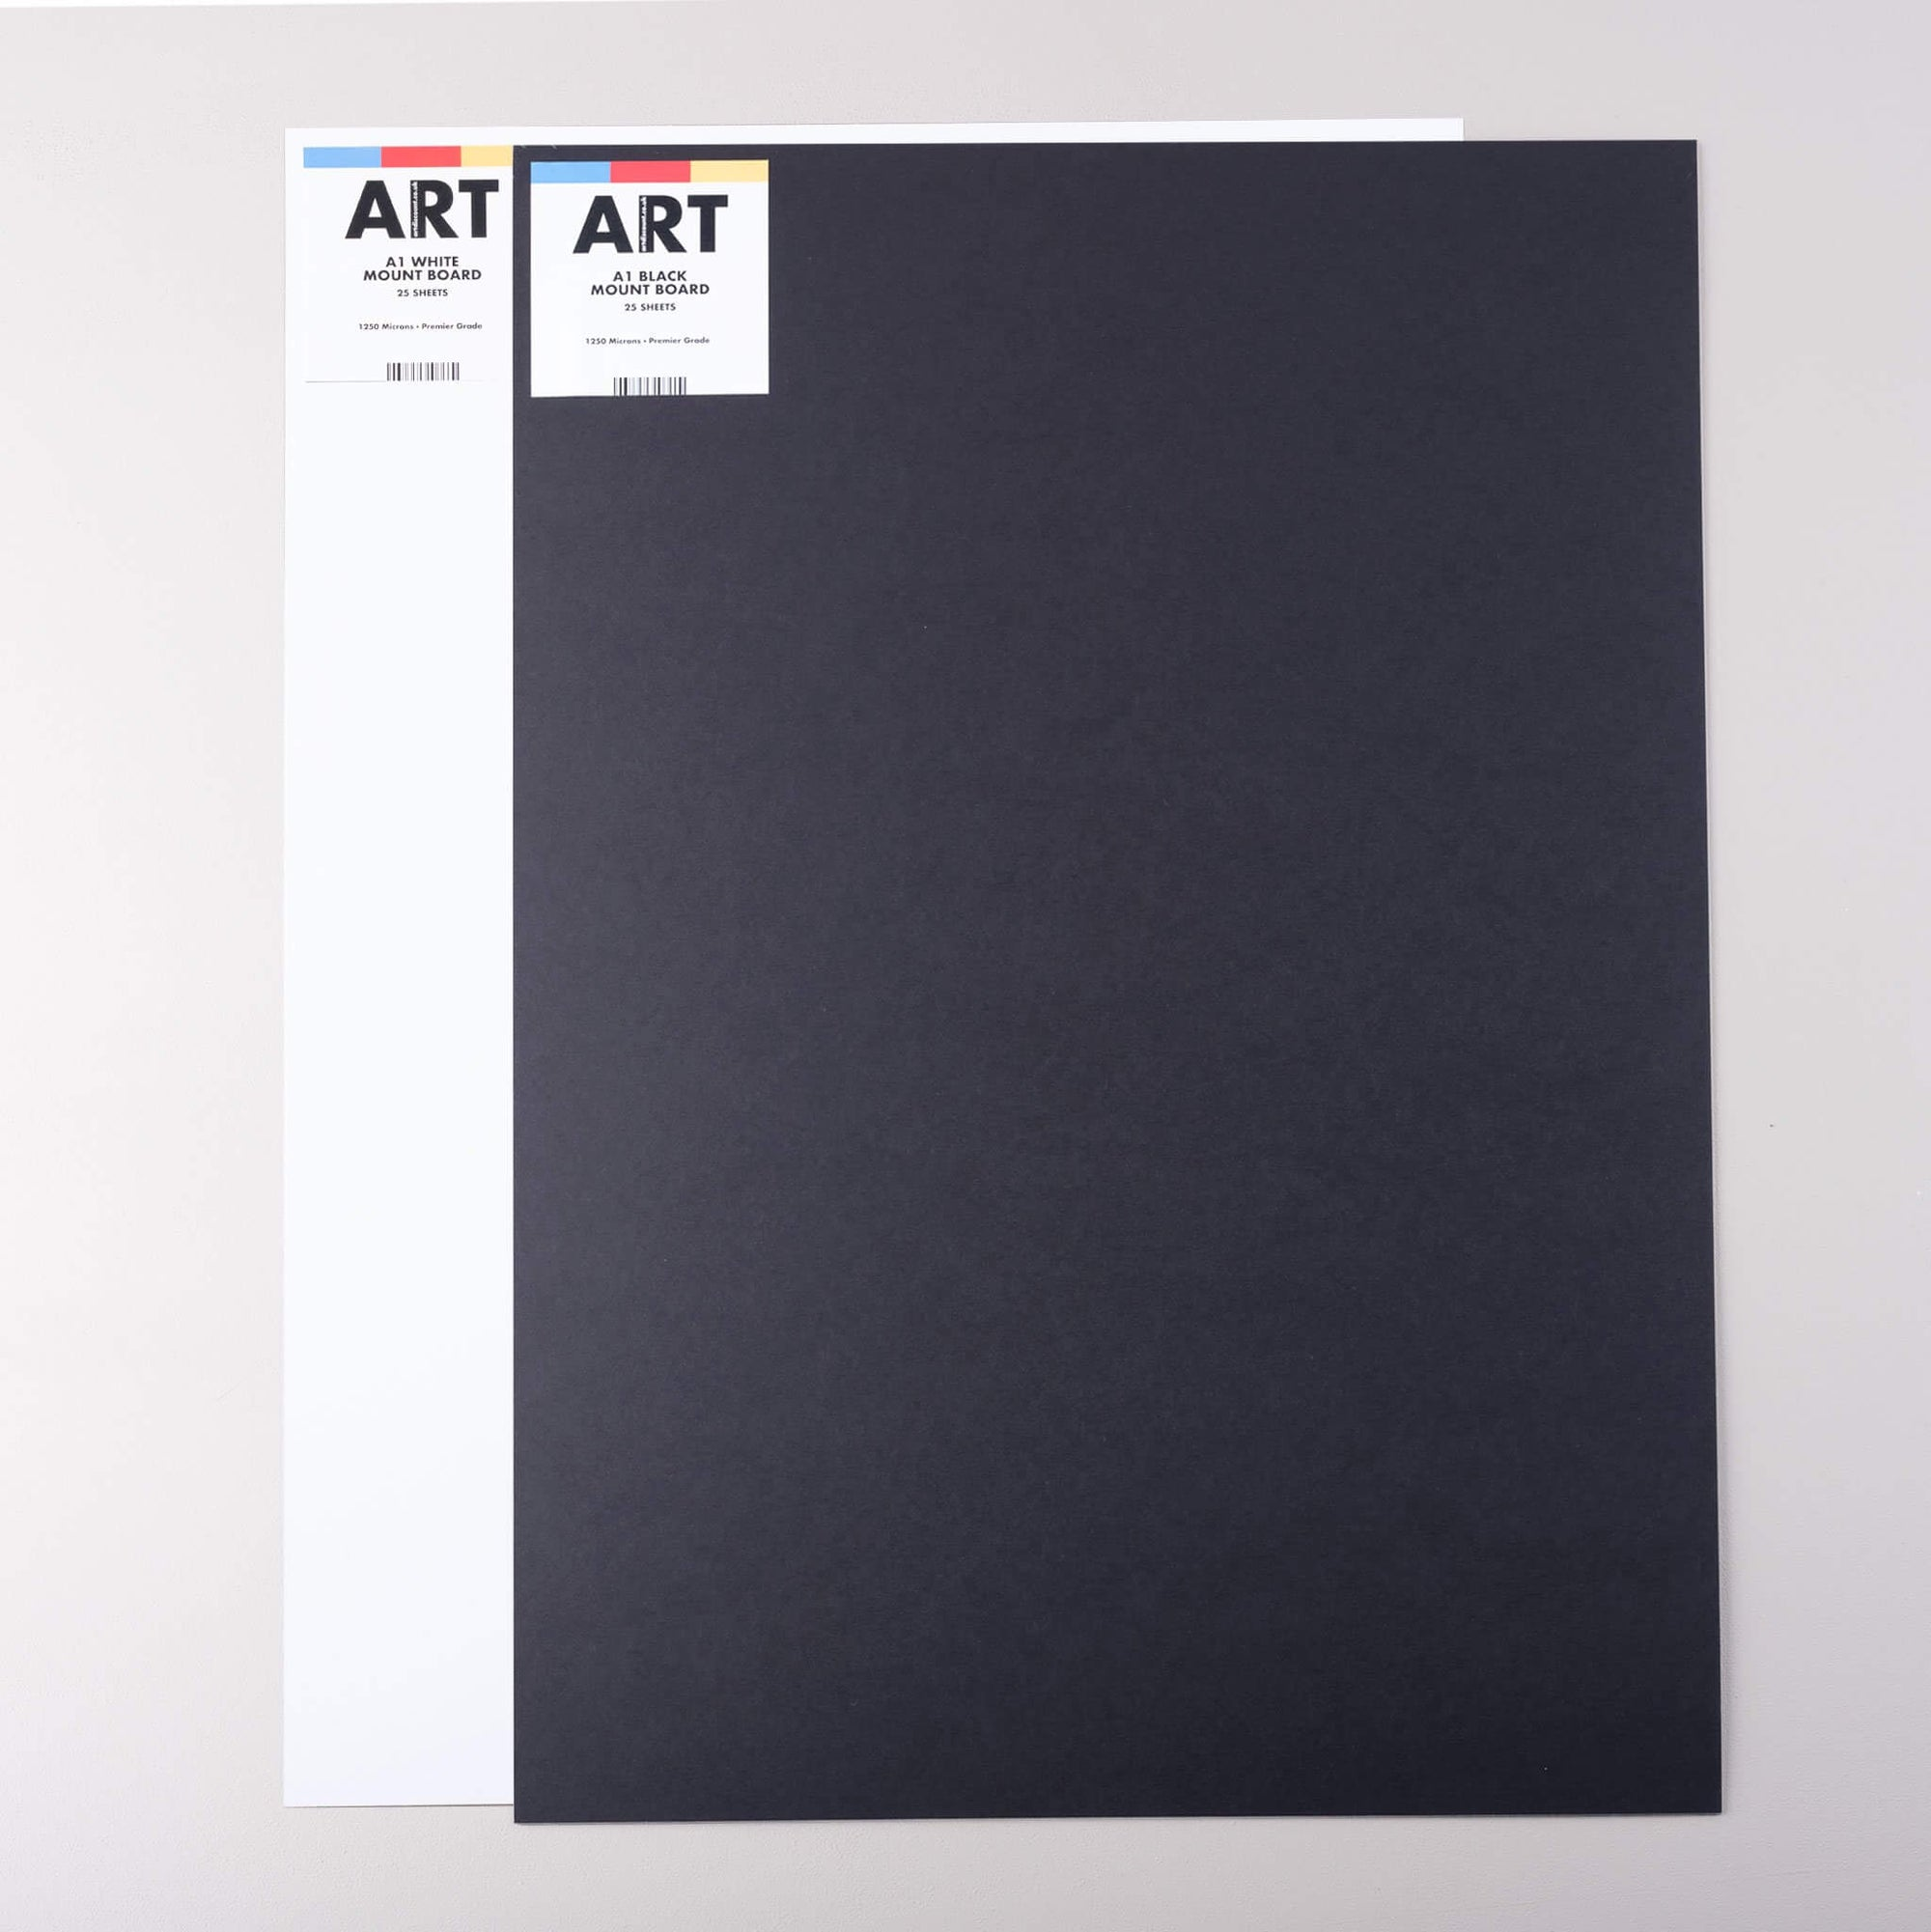 ARTdiscount A1 Mount Board (Packs of 25 Sheets)